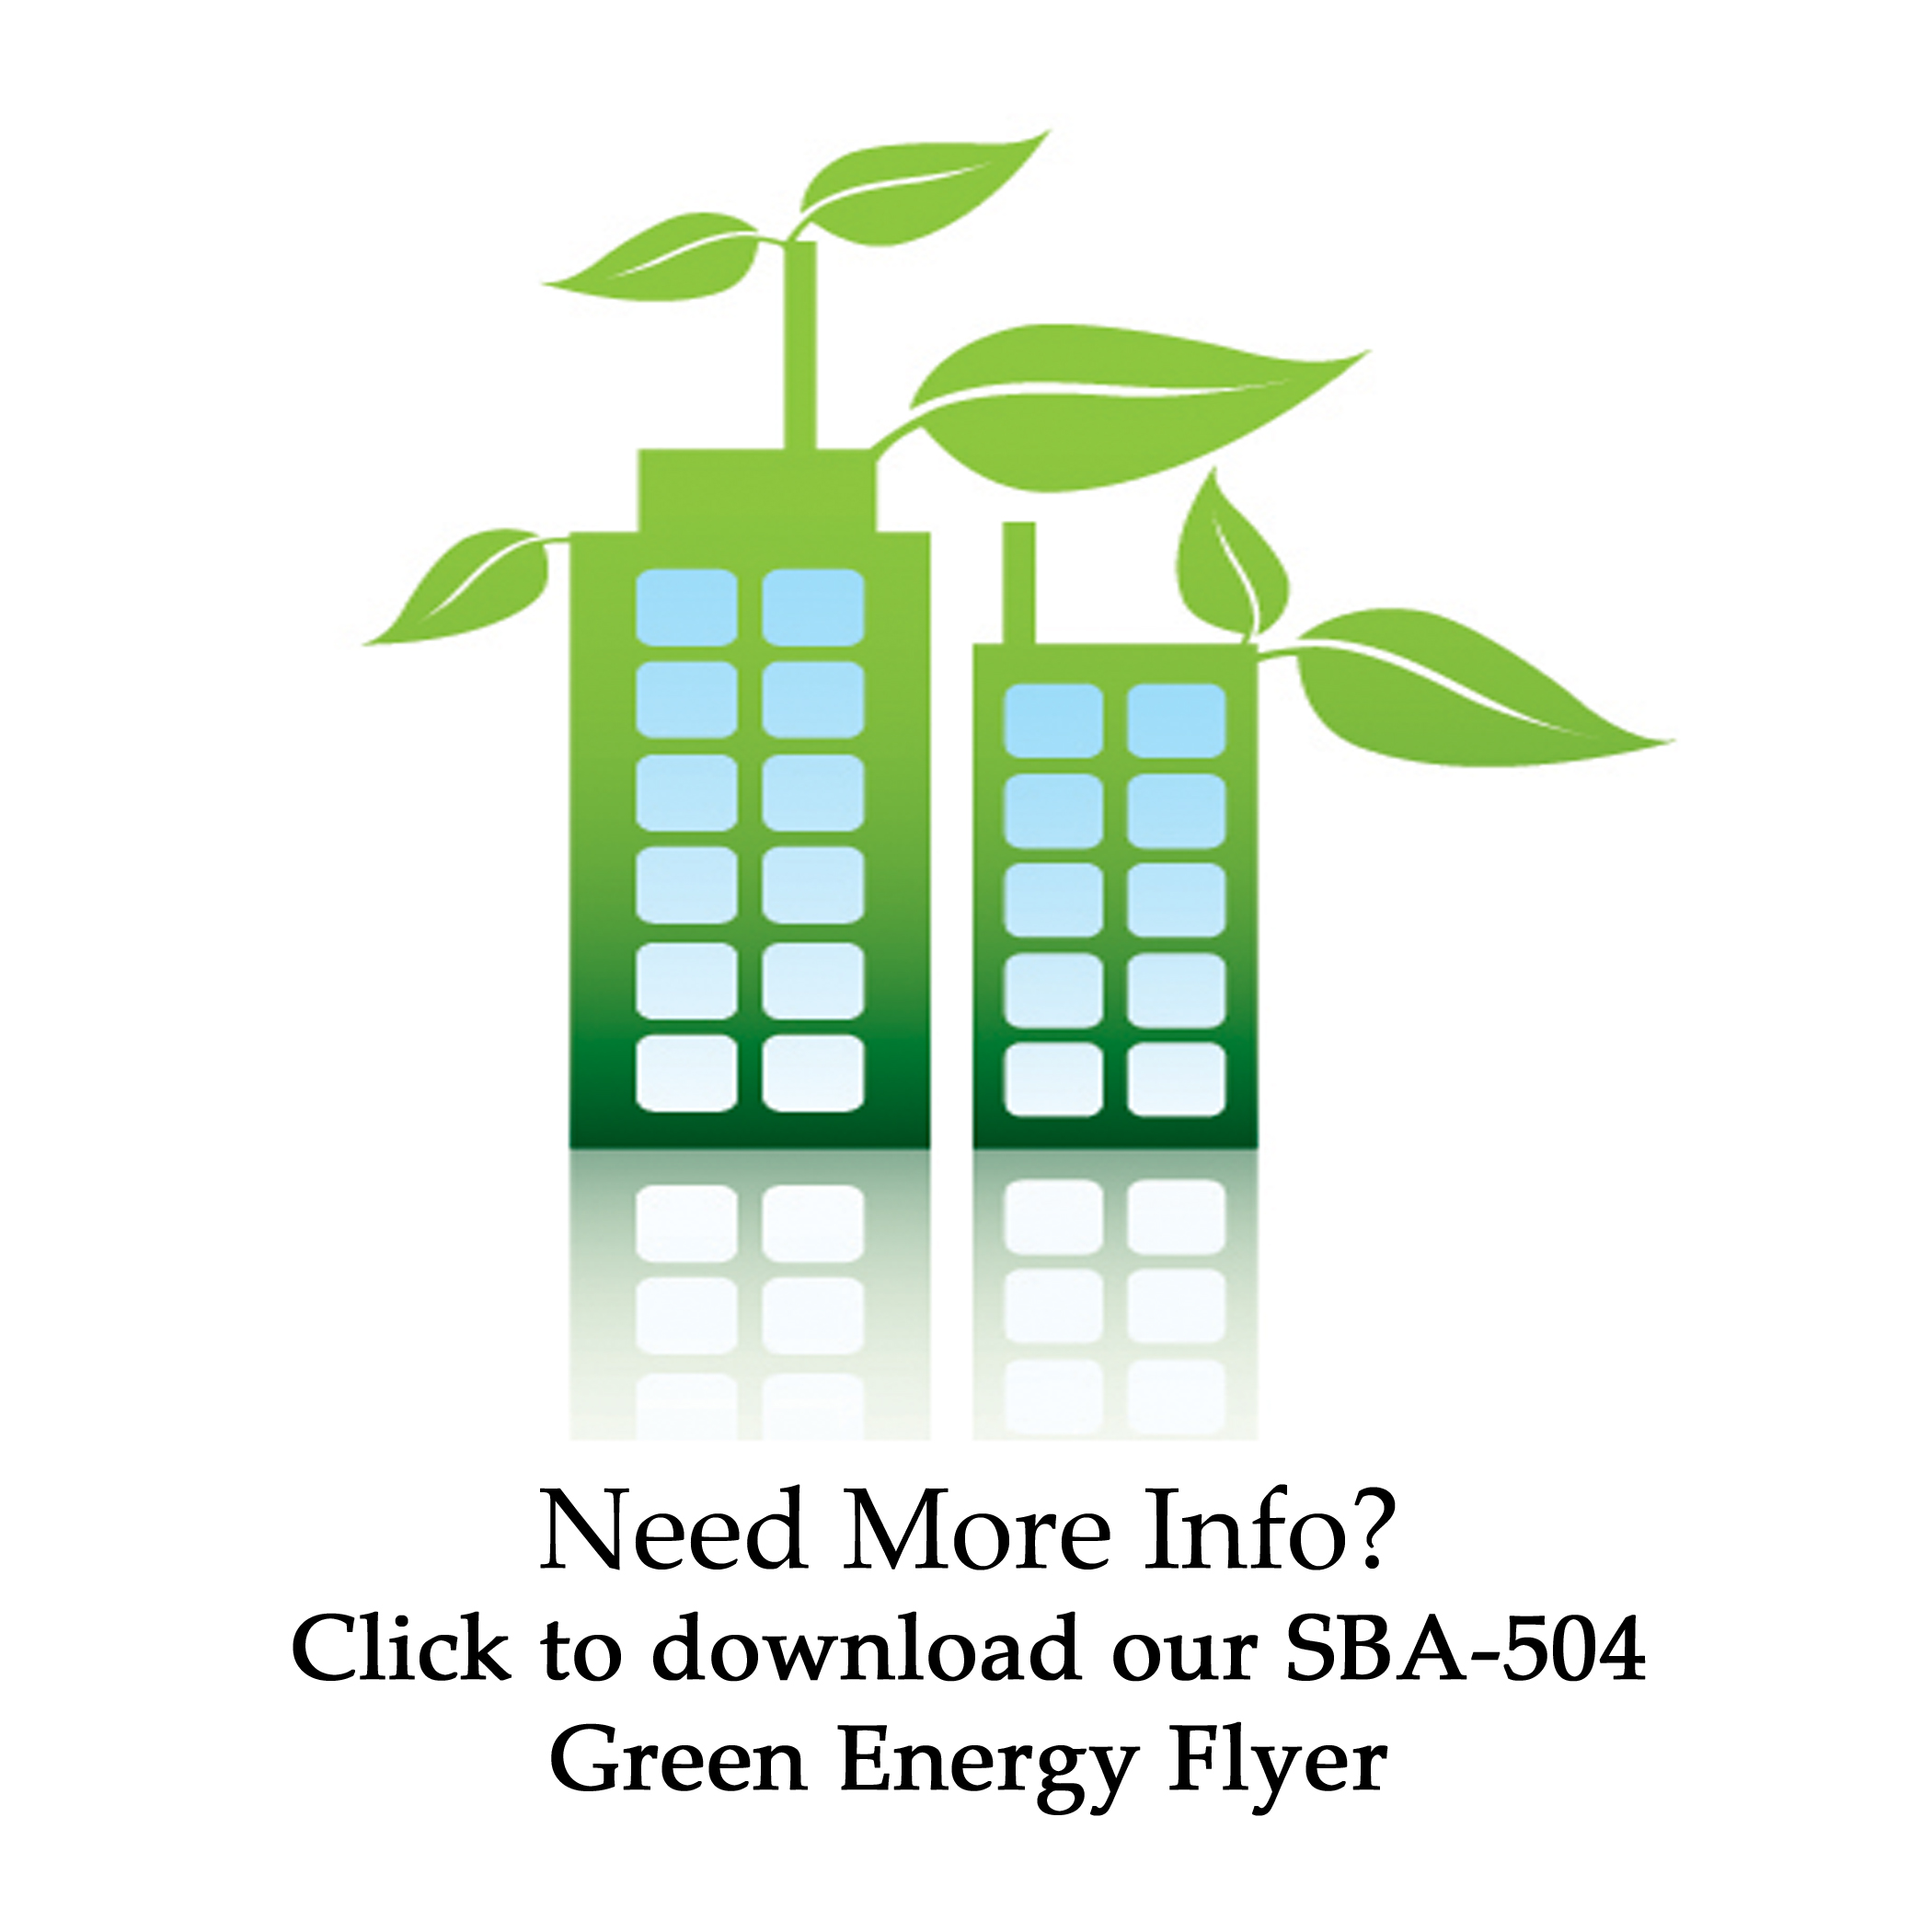 Download our SBA-504 Green Energy flyer